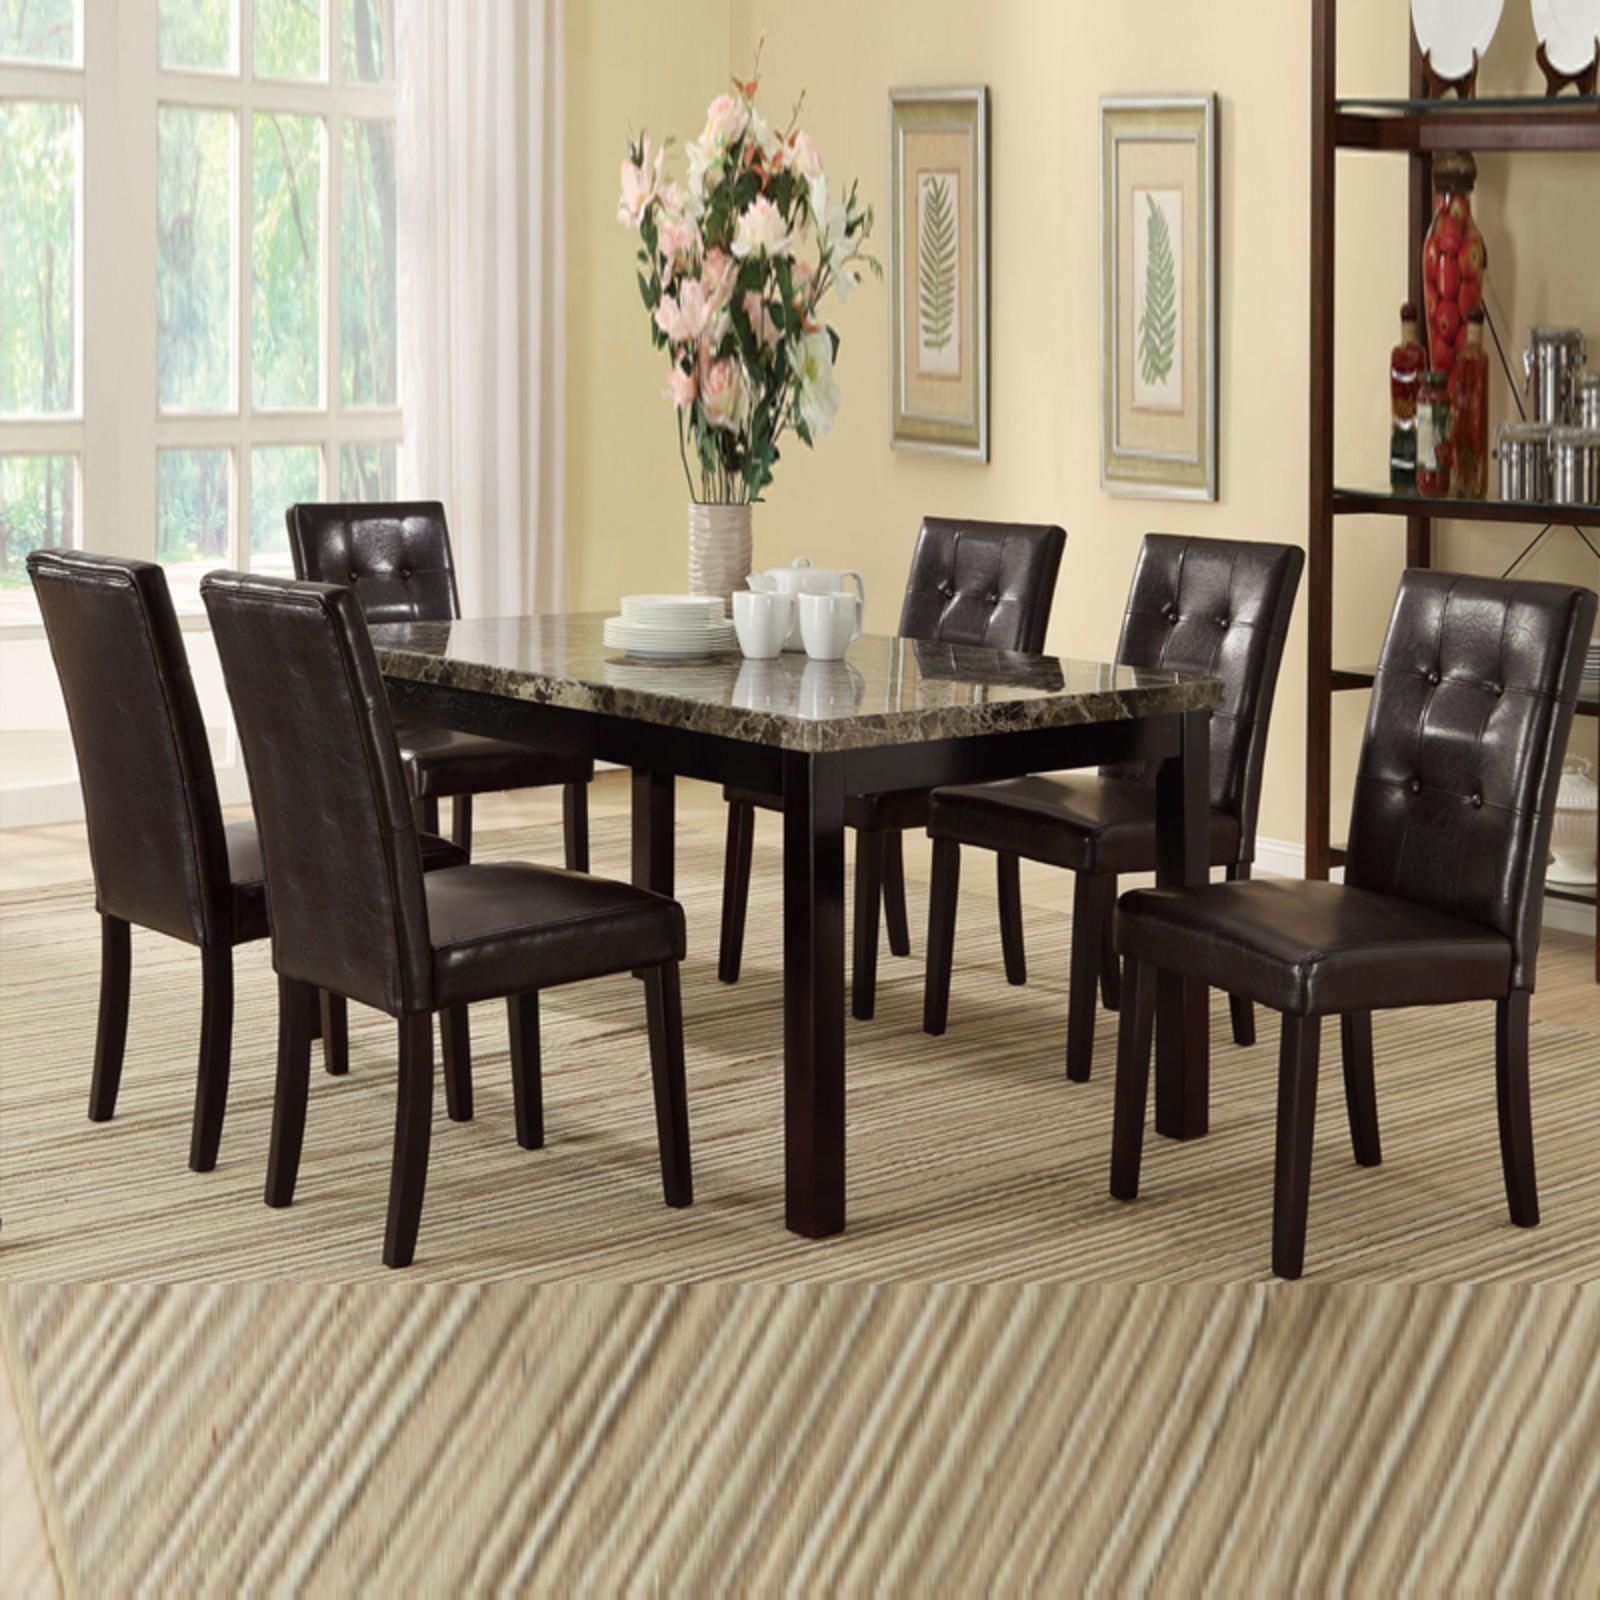 Lightle 5 Piece Breakfast Nook Dining Set | Welcome Home | Glass For Most Up To Date Lightle 5 Piece Breakfast Nook Dining Sets (Image 11 of 20)